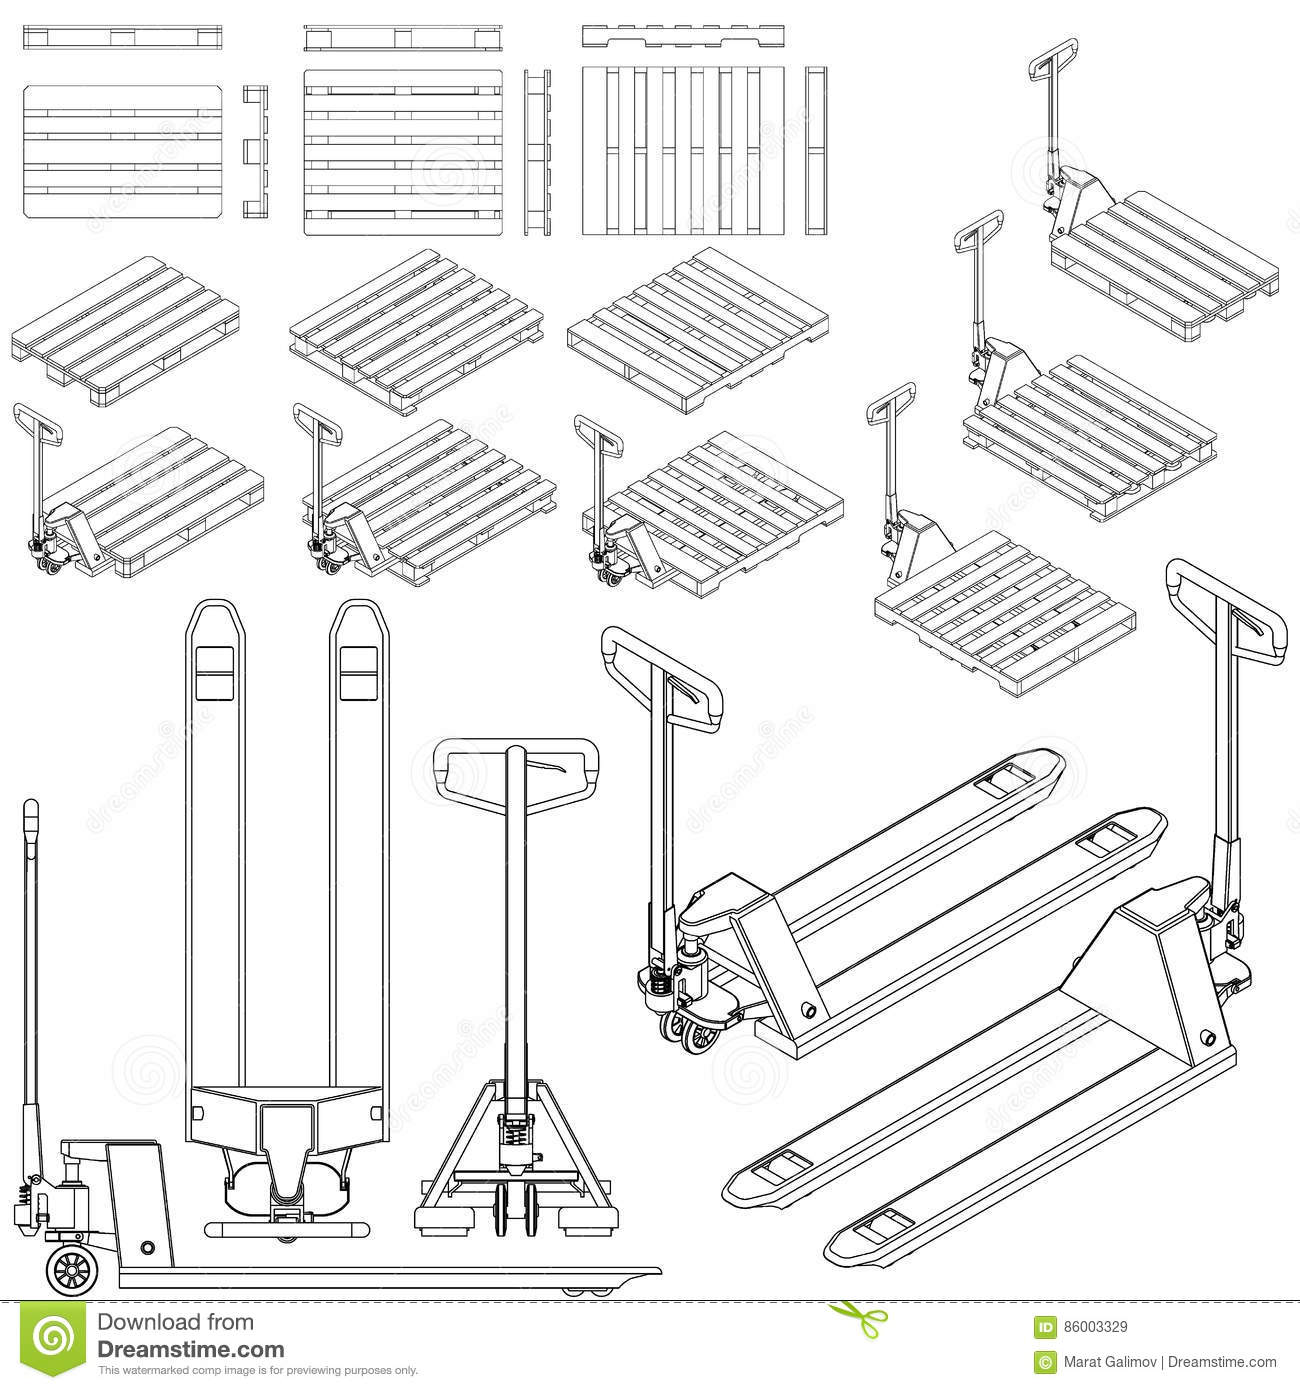 Hand Pallet Truck. Manual Forklift. Royalty-Free